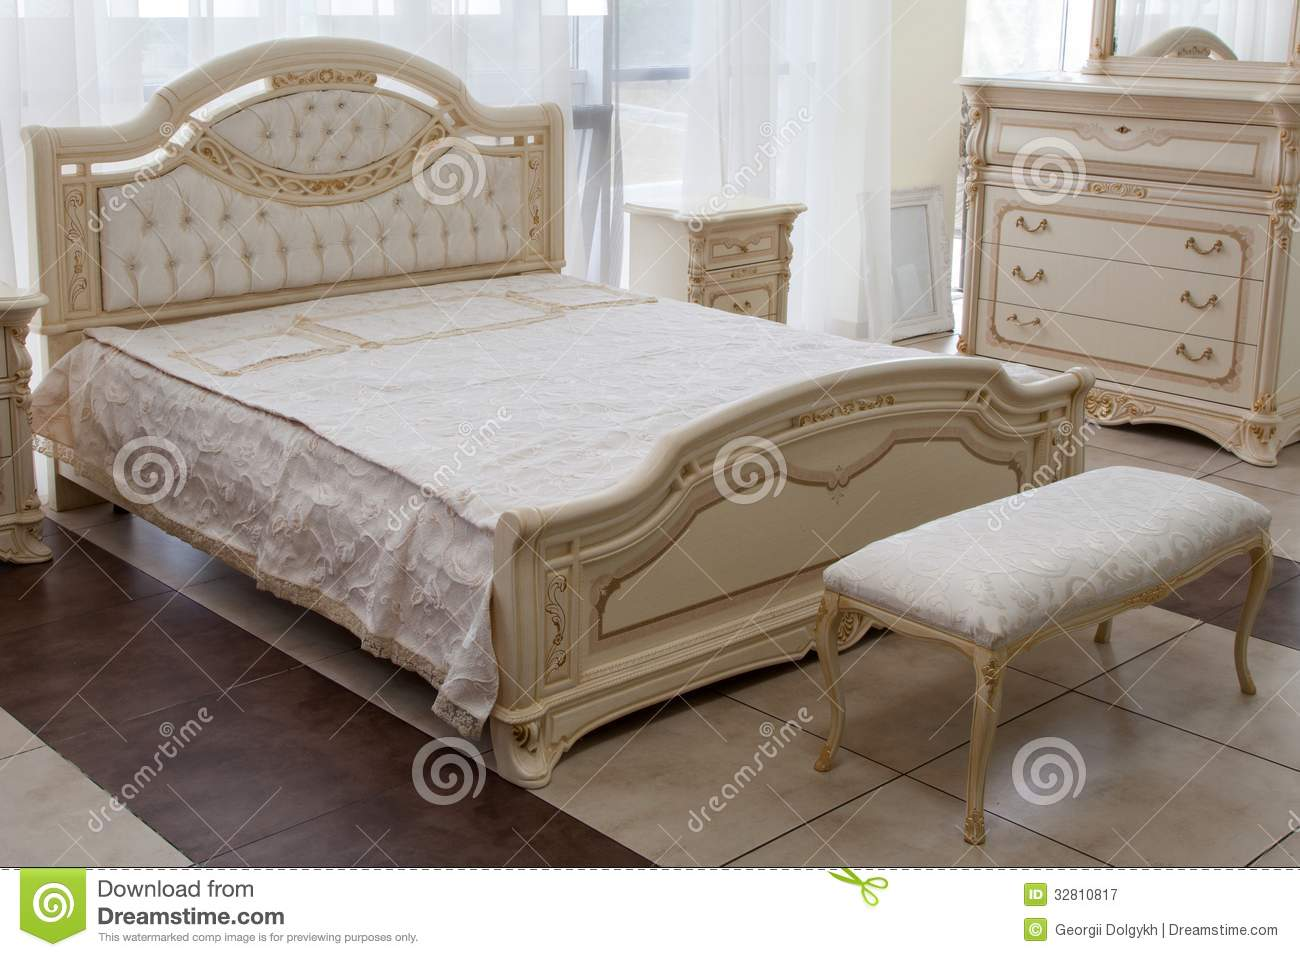 Awesome chambre a coucher royal italy images design for Chombre a coucher moderne